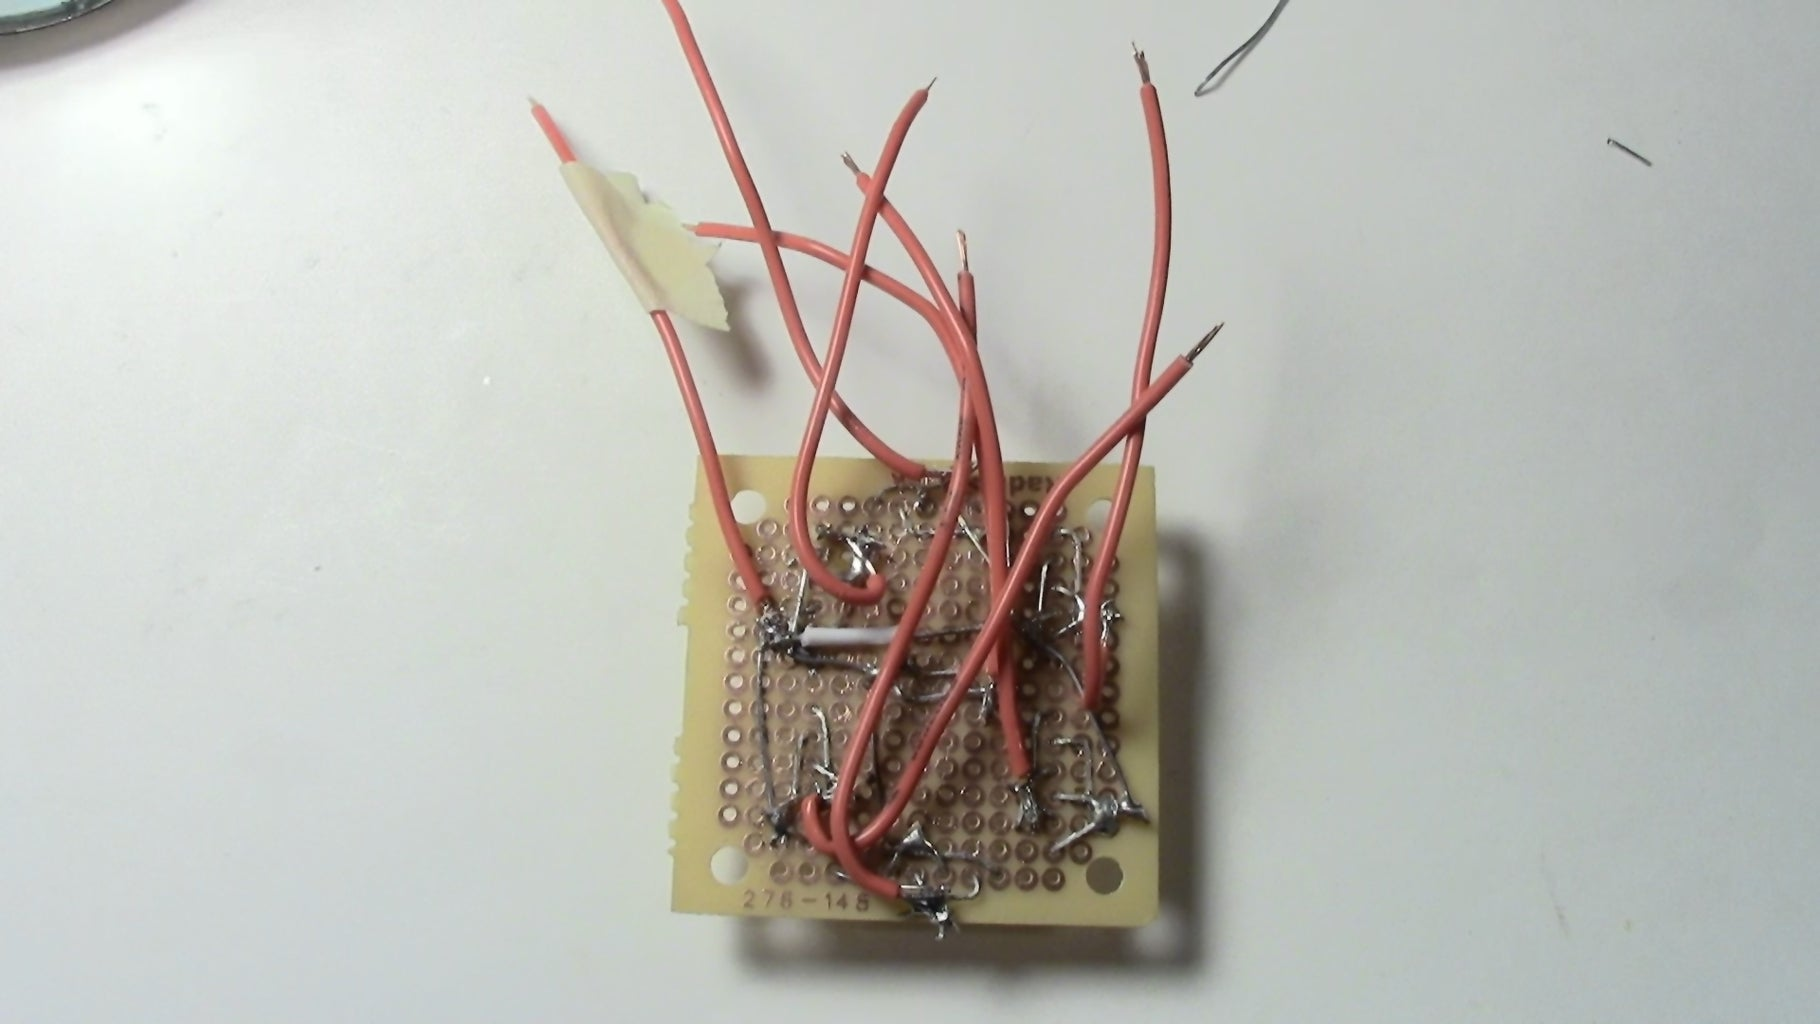 The Out Wires